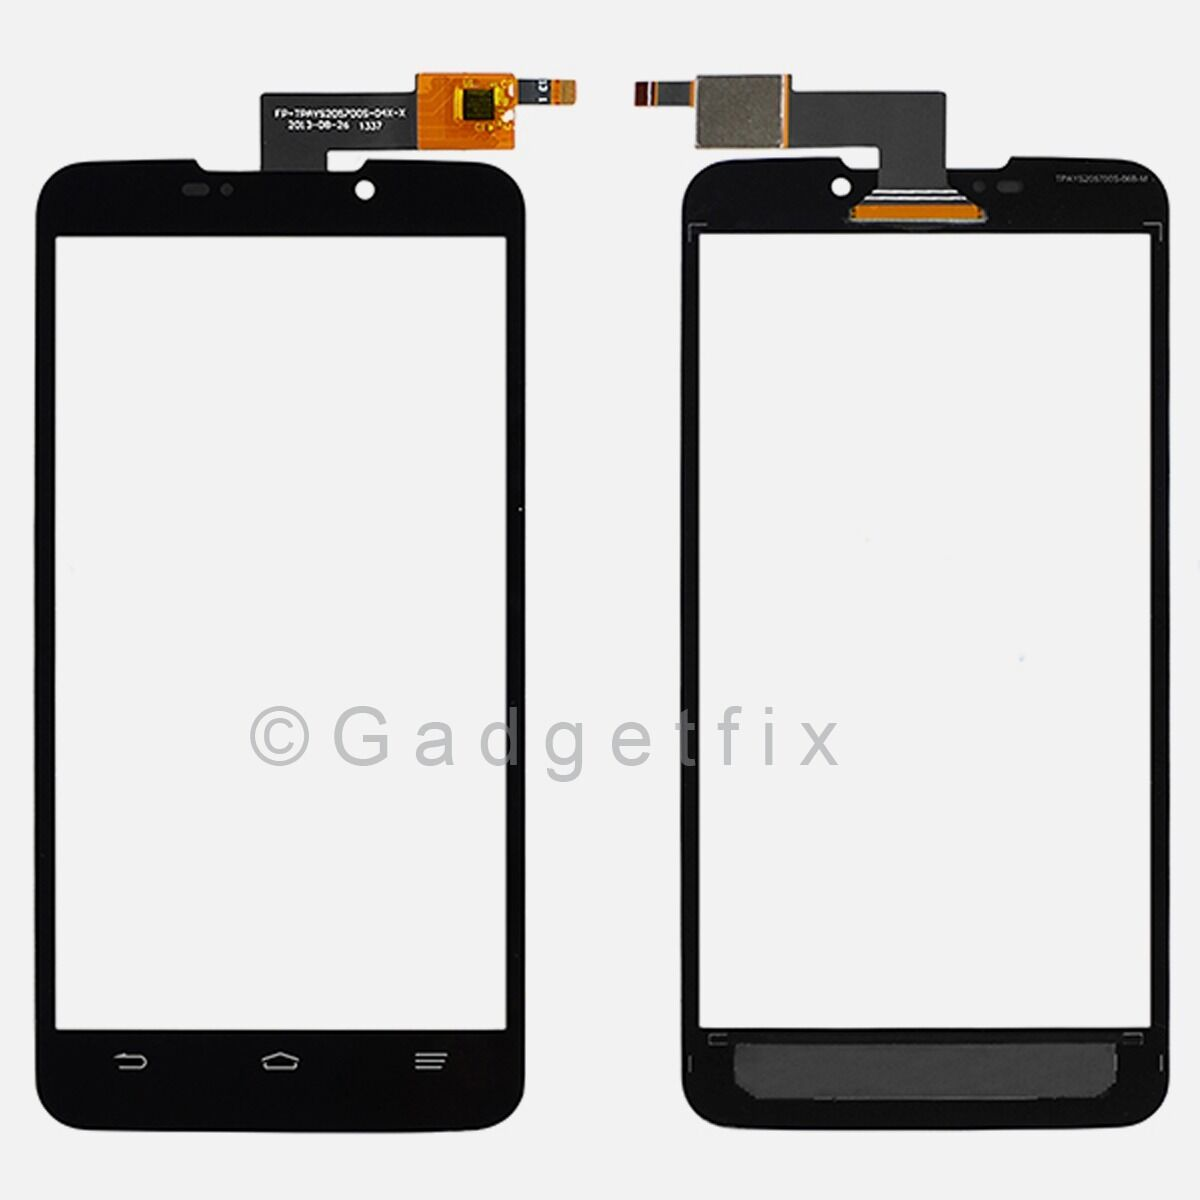 Us Black Zte Boost Max N9520 Touch Screen Digitizer Top Glass Panel Lens Parts 1394 Blade Lux V830w 1 Of 5free Shipping